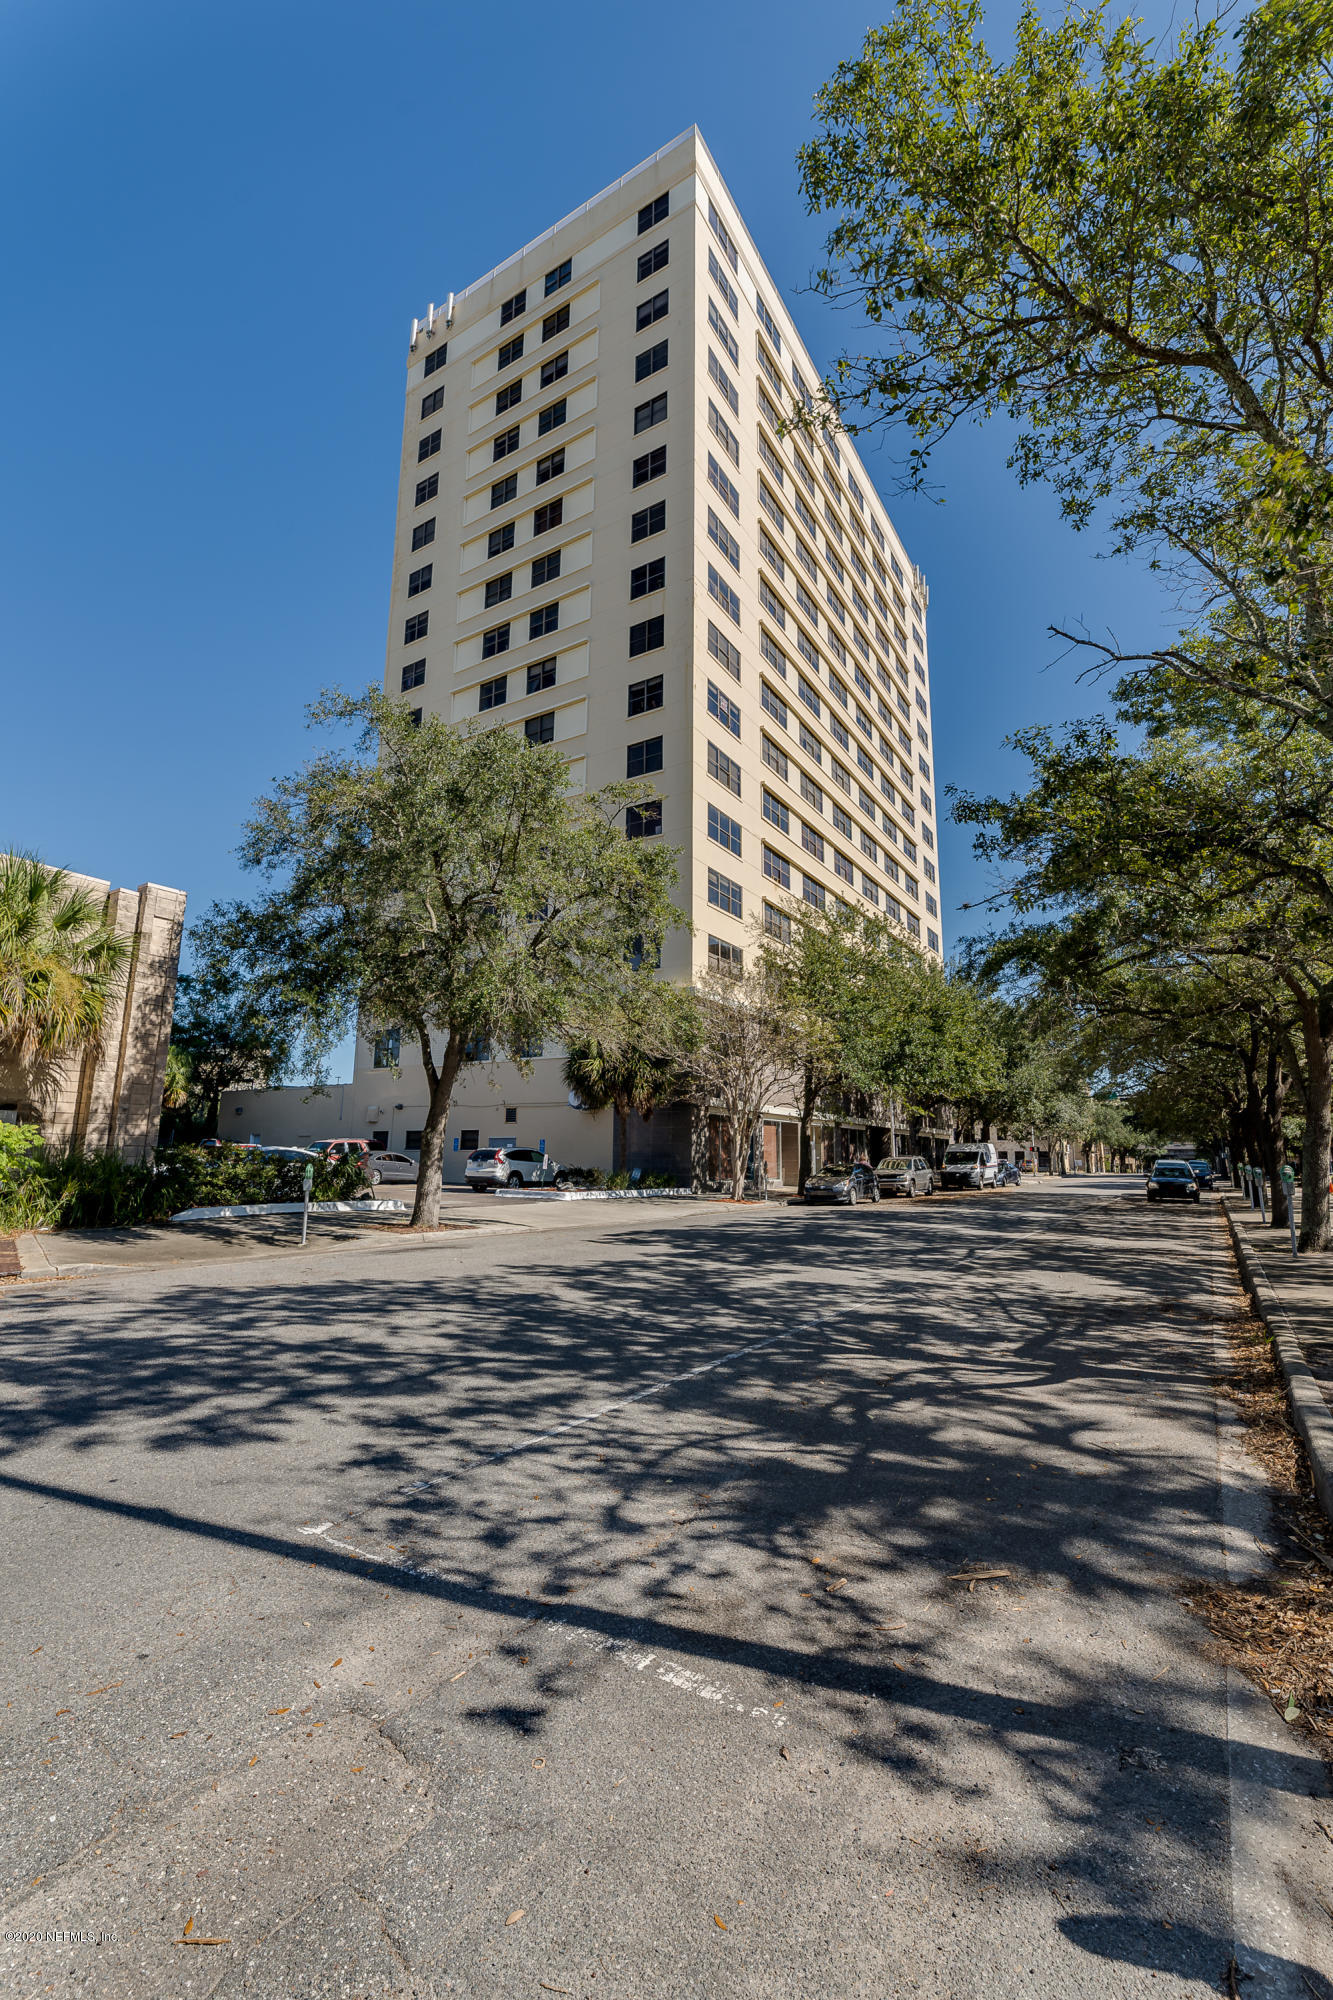 311 ASHLEY, JACKSONVILLE, FLORIDA 32202, 1 Bedroom Bedrooms, ,1 BathroomBathrooms,Residential,For sale,ASHLEY,1081687